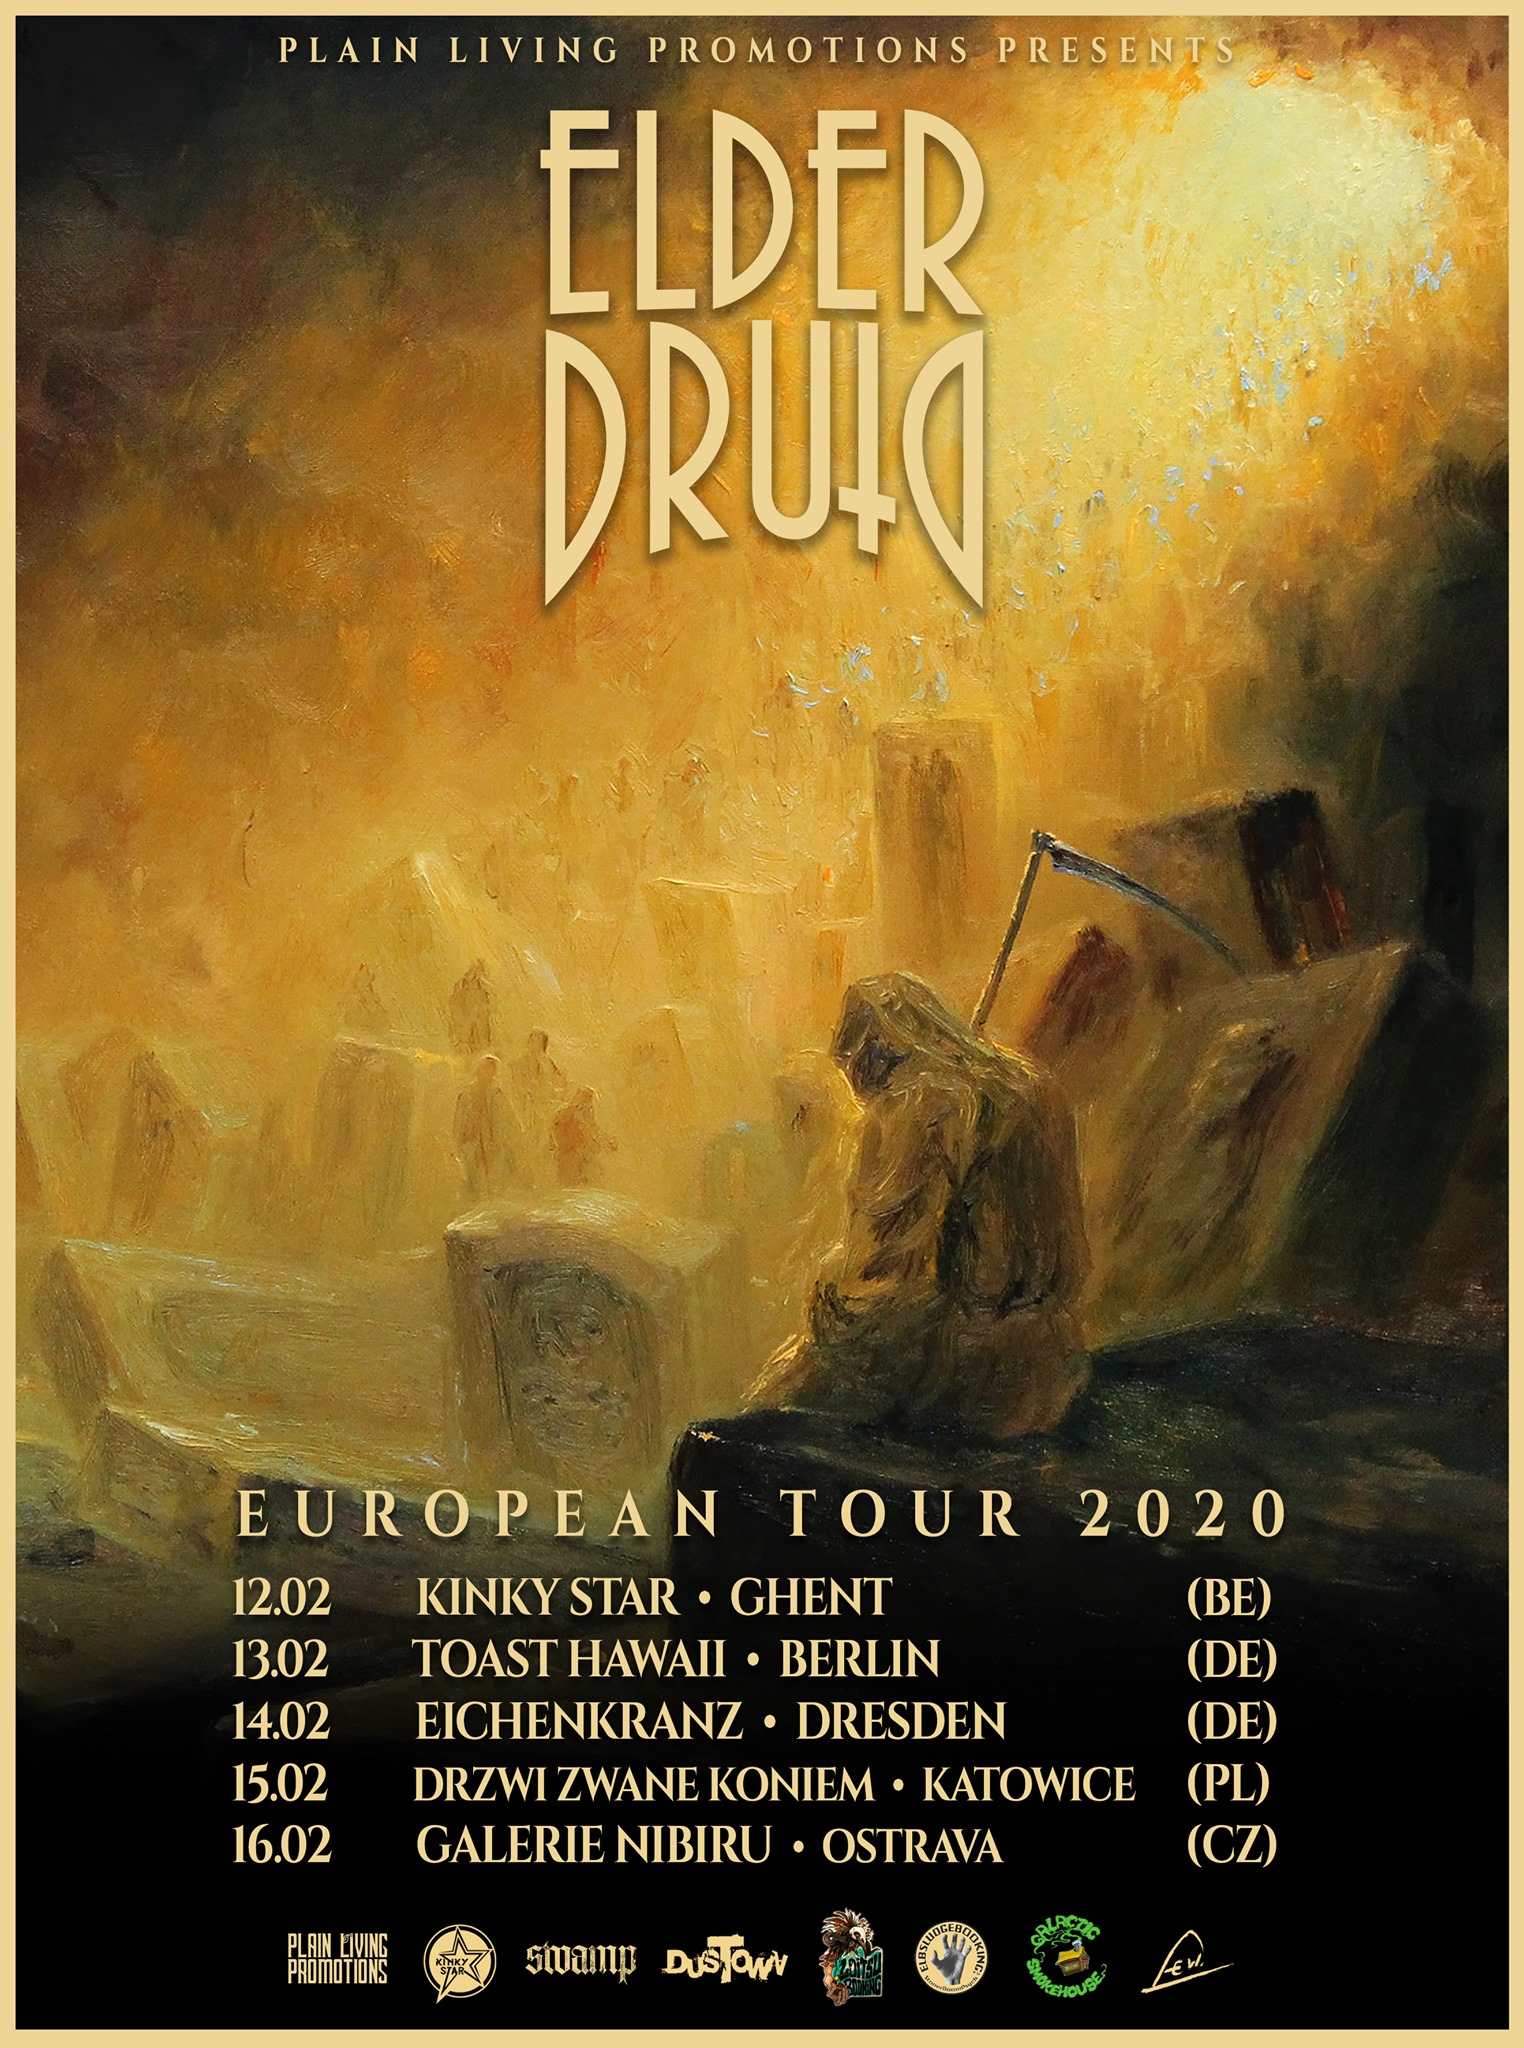 elder druid tour